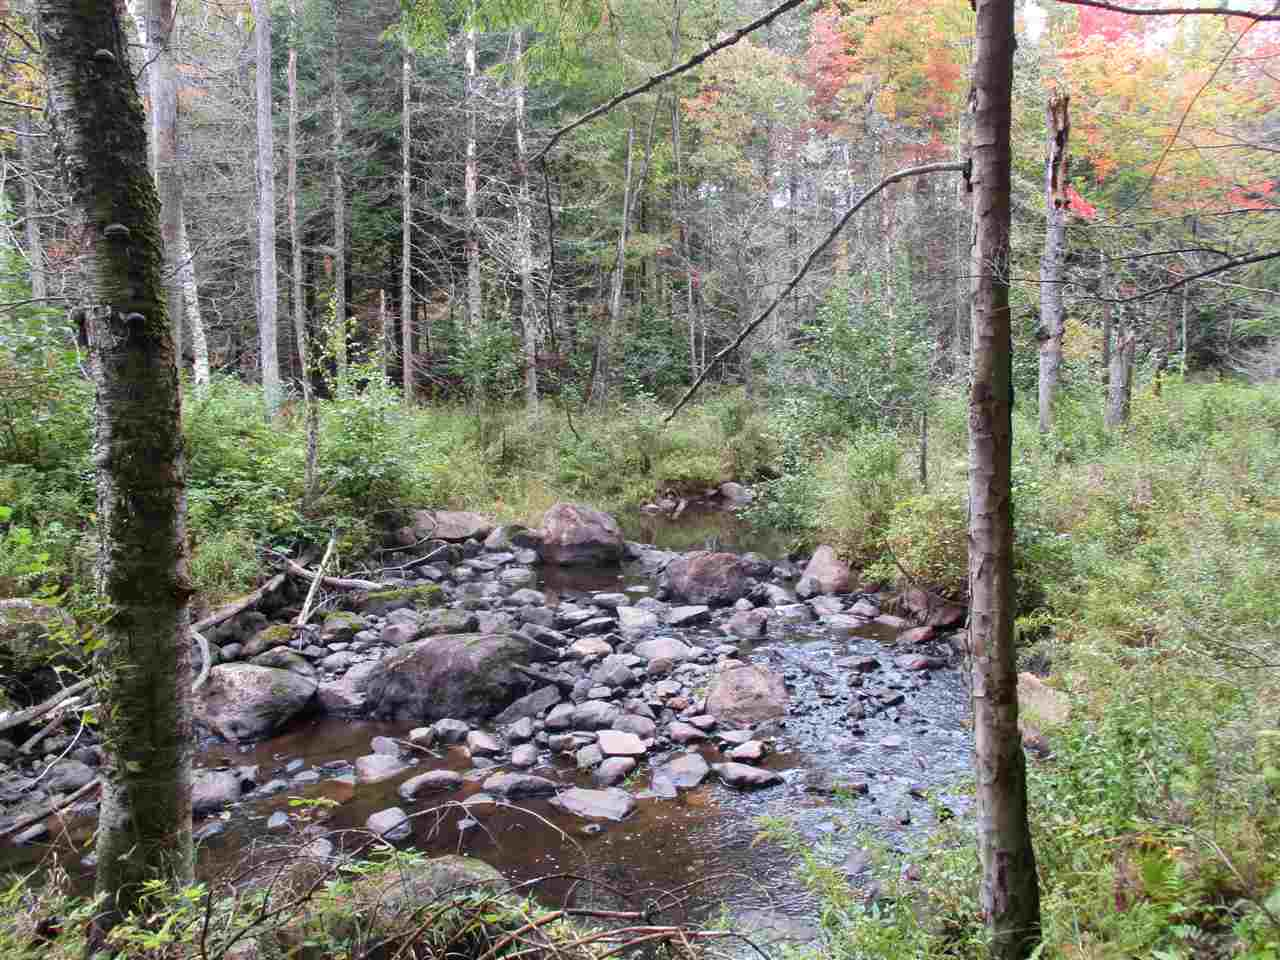 Keeseville image 14